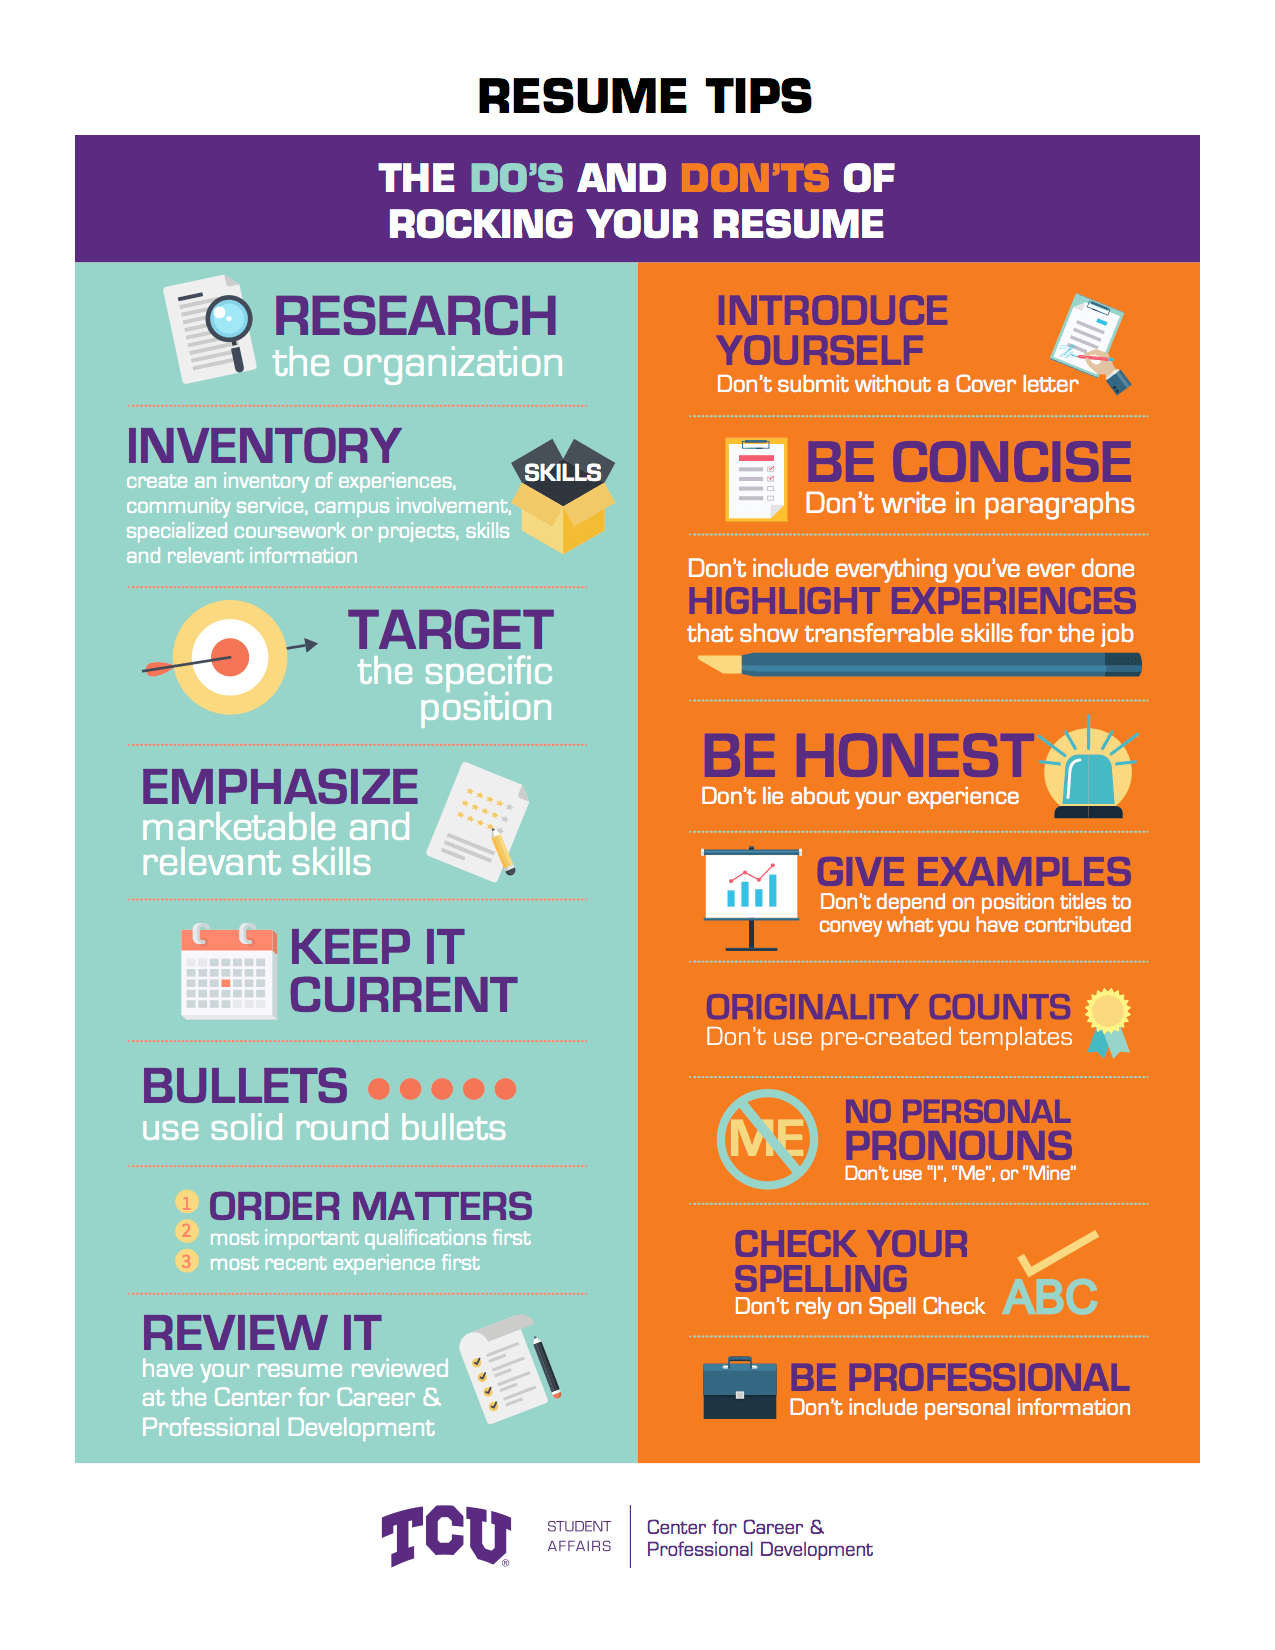 How To Introduce Yourself In Resume Resume Tips Do Research The Organization Don T Introduce